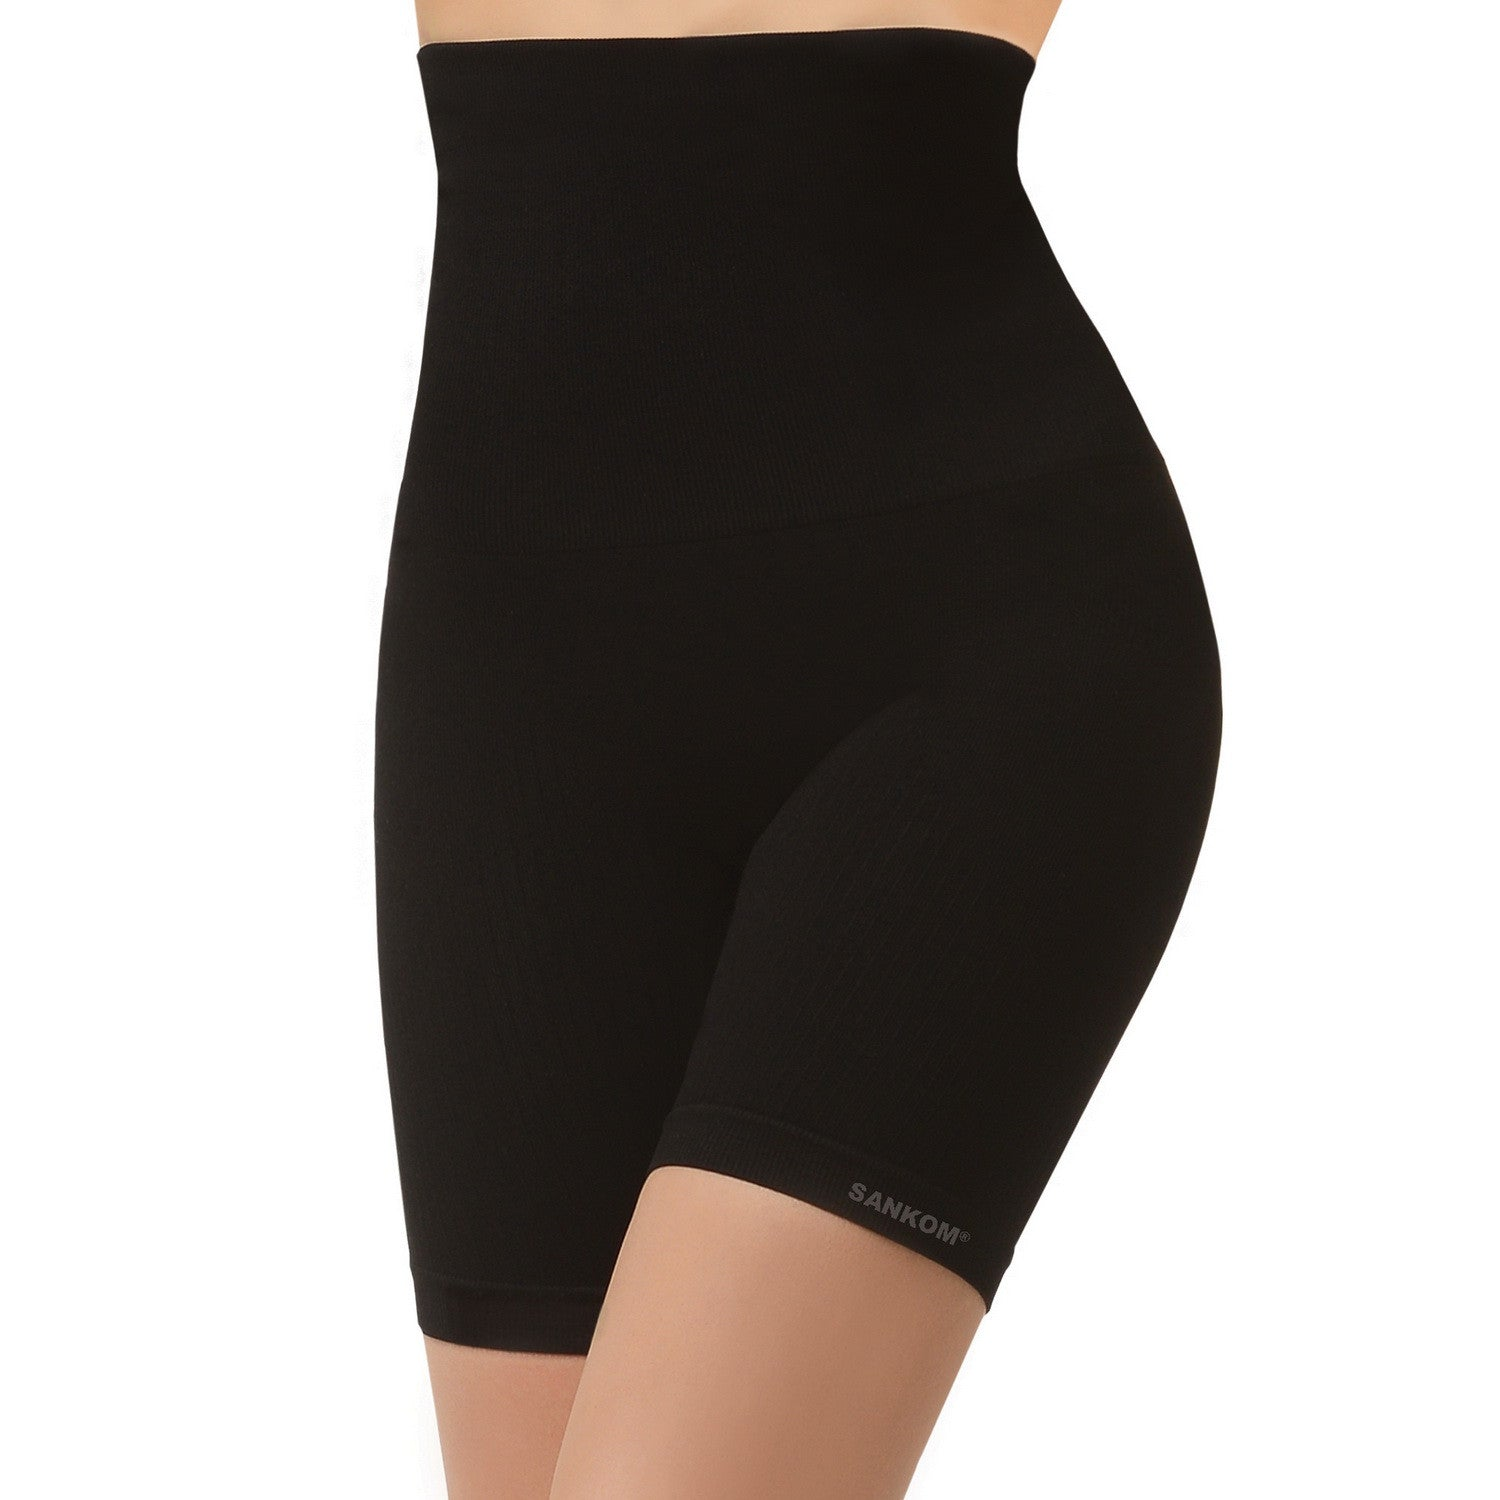 ed01cce8eaac3 SANKOM Patent Shapewear Collection – SANKOM.COM